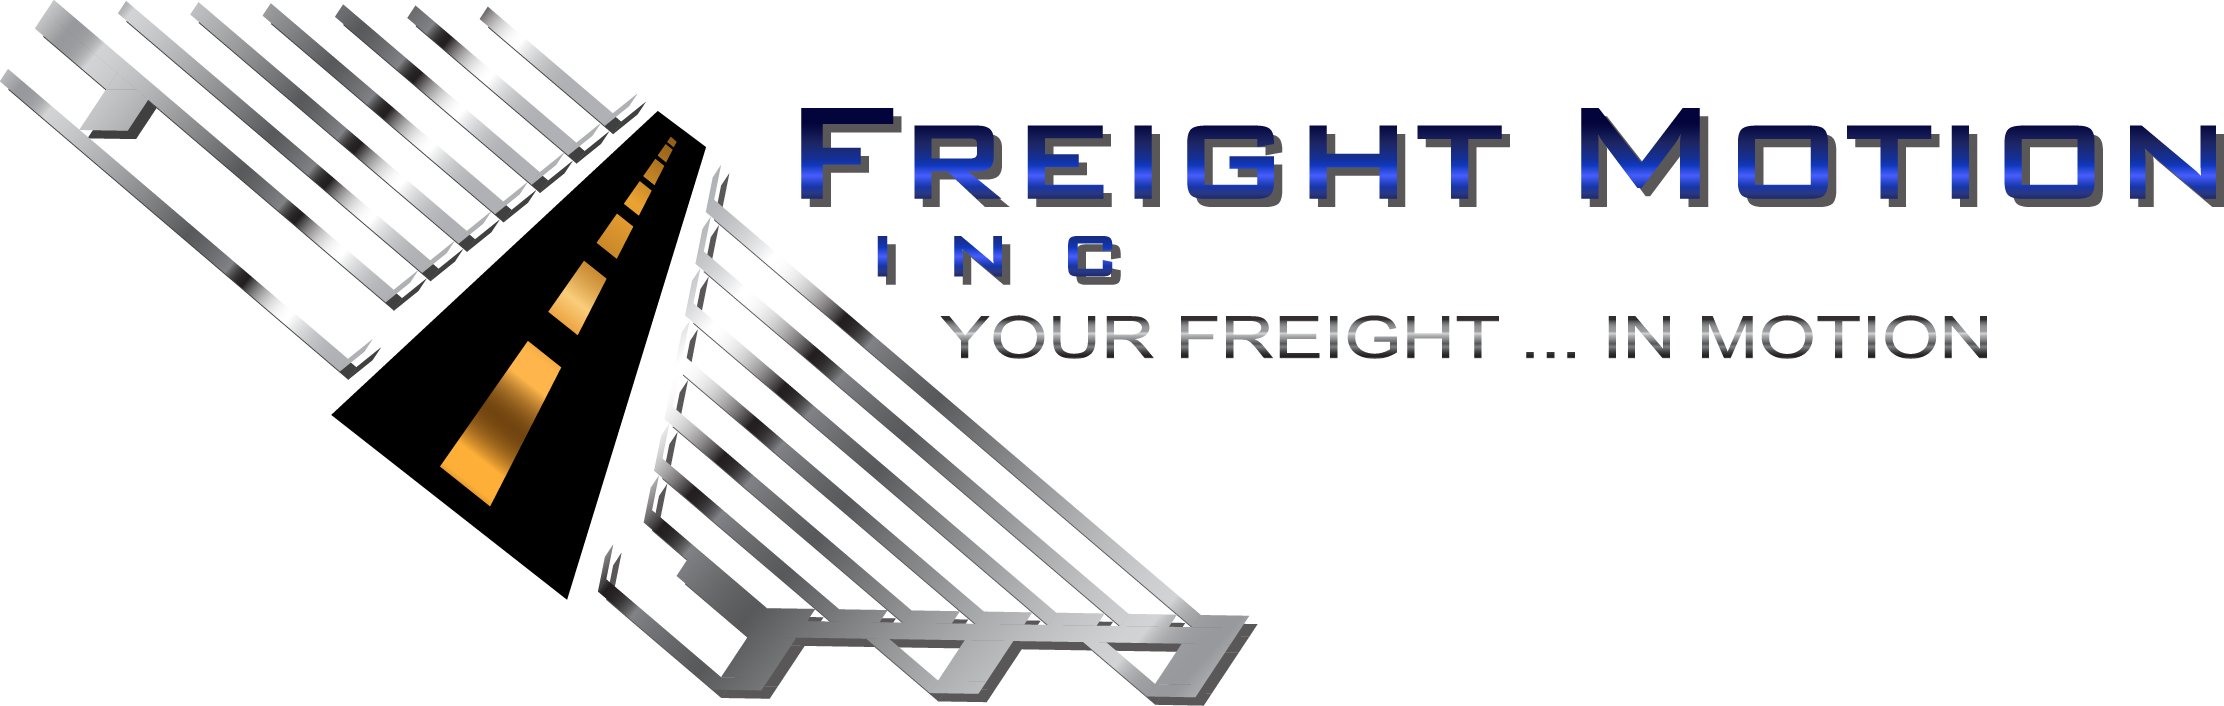 Freight Motion